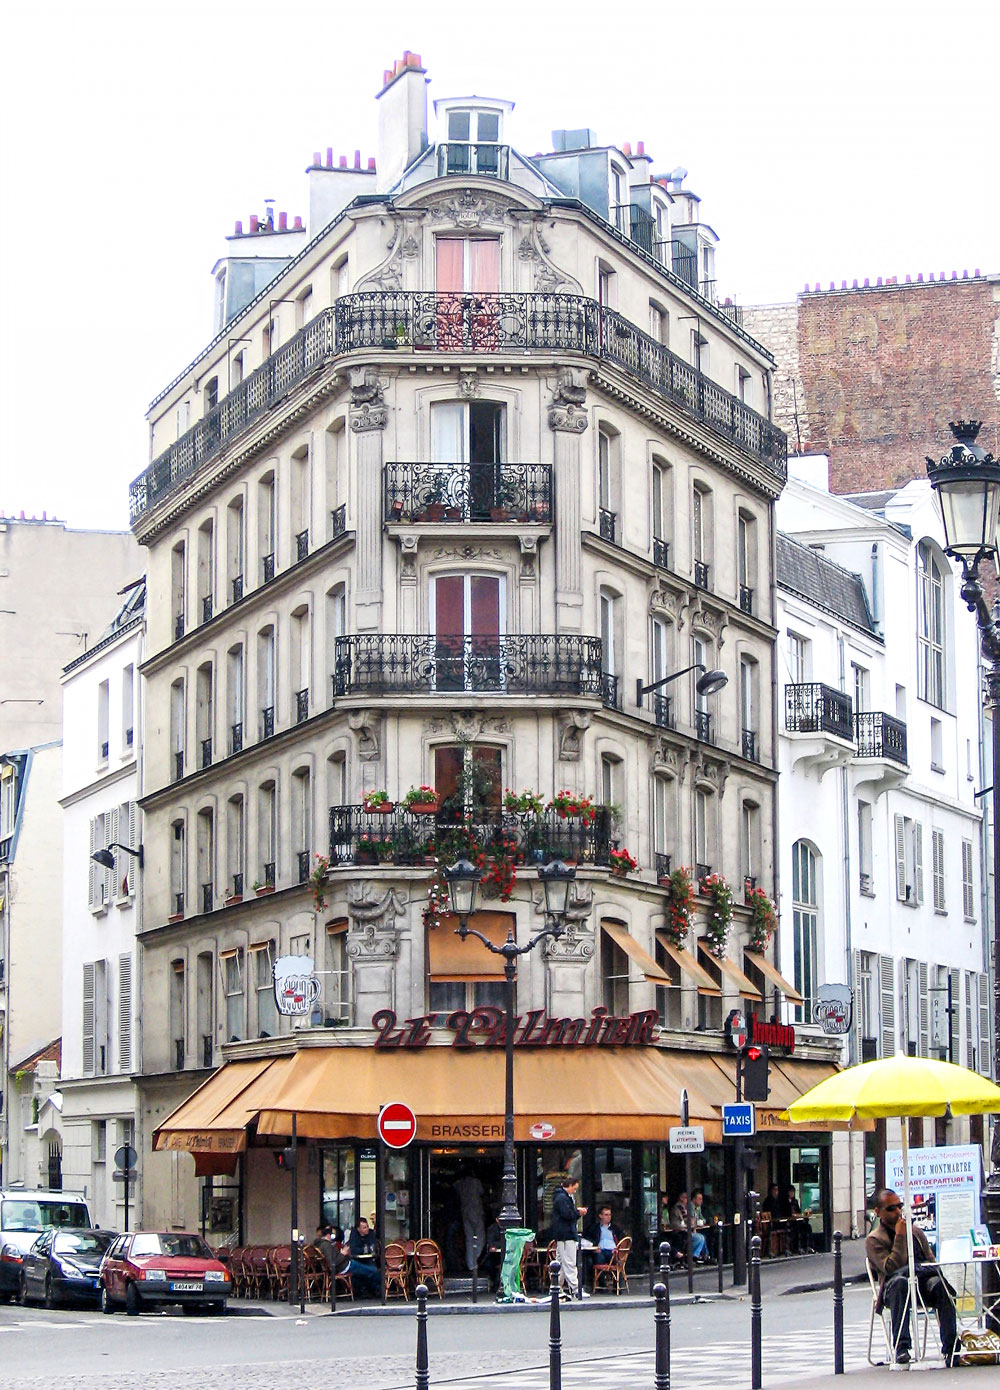 Zuri_Zuberi_paris_building